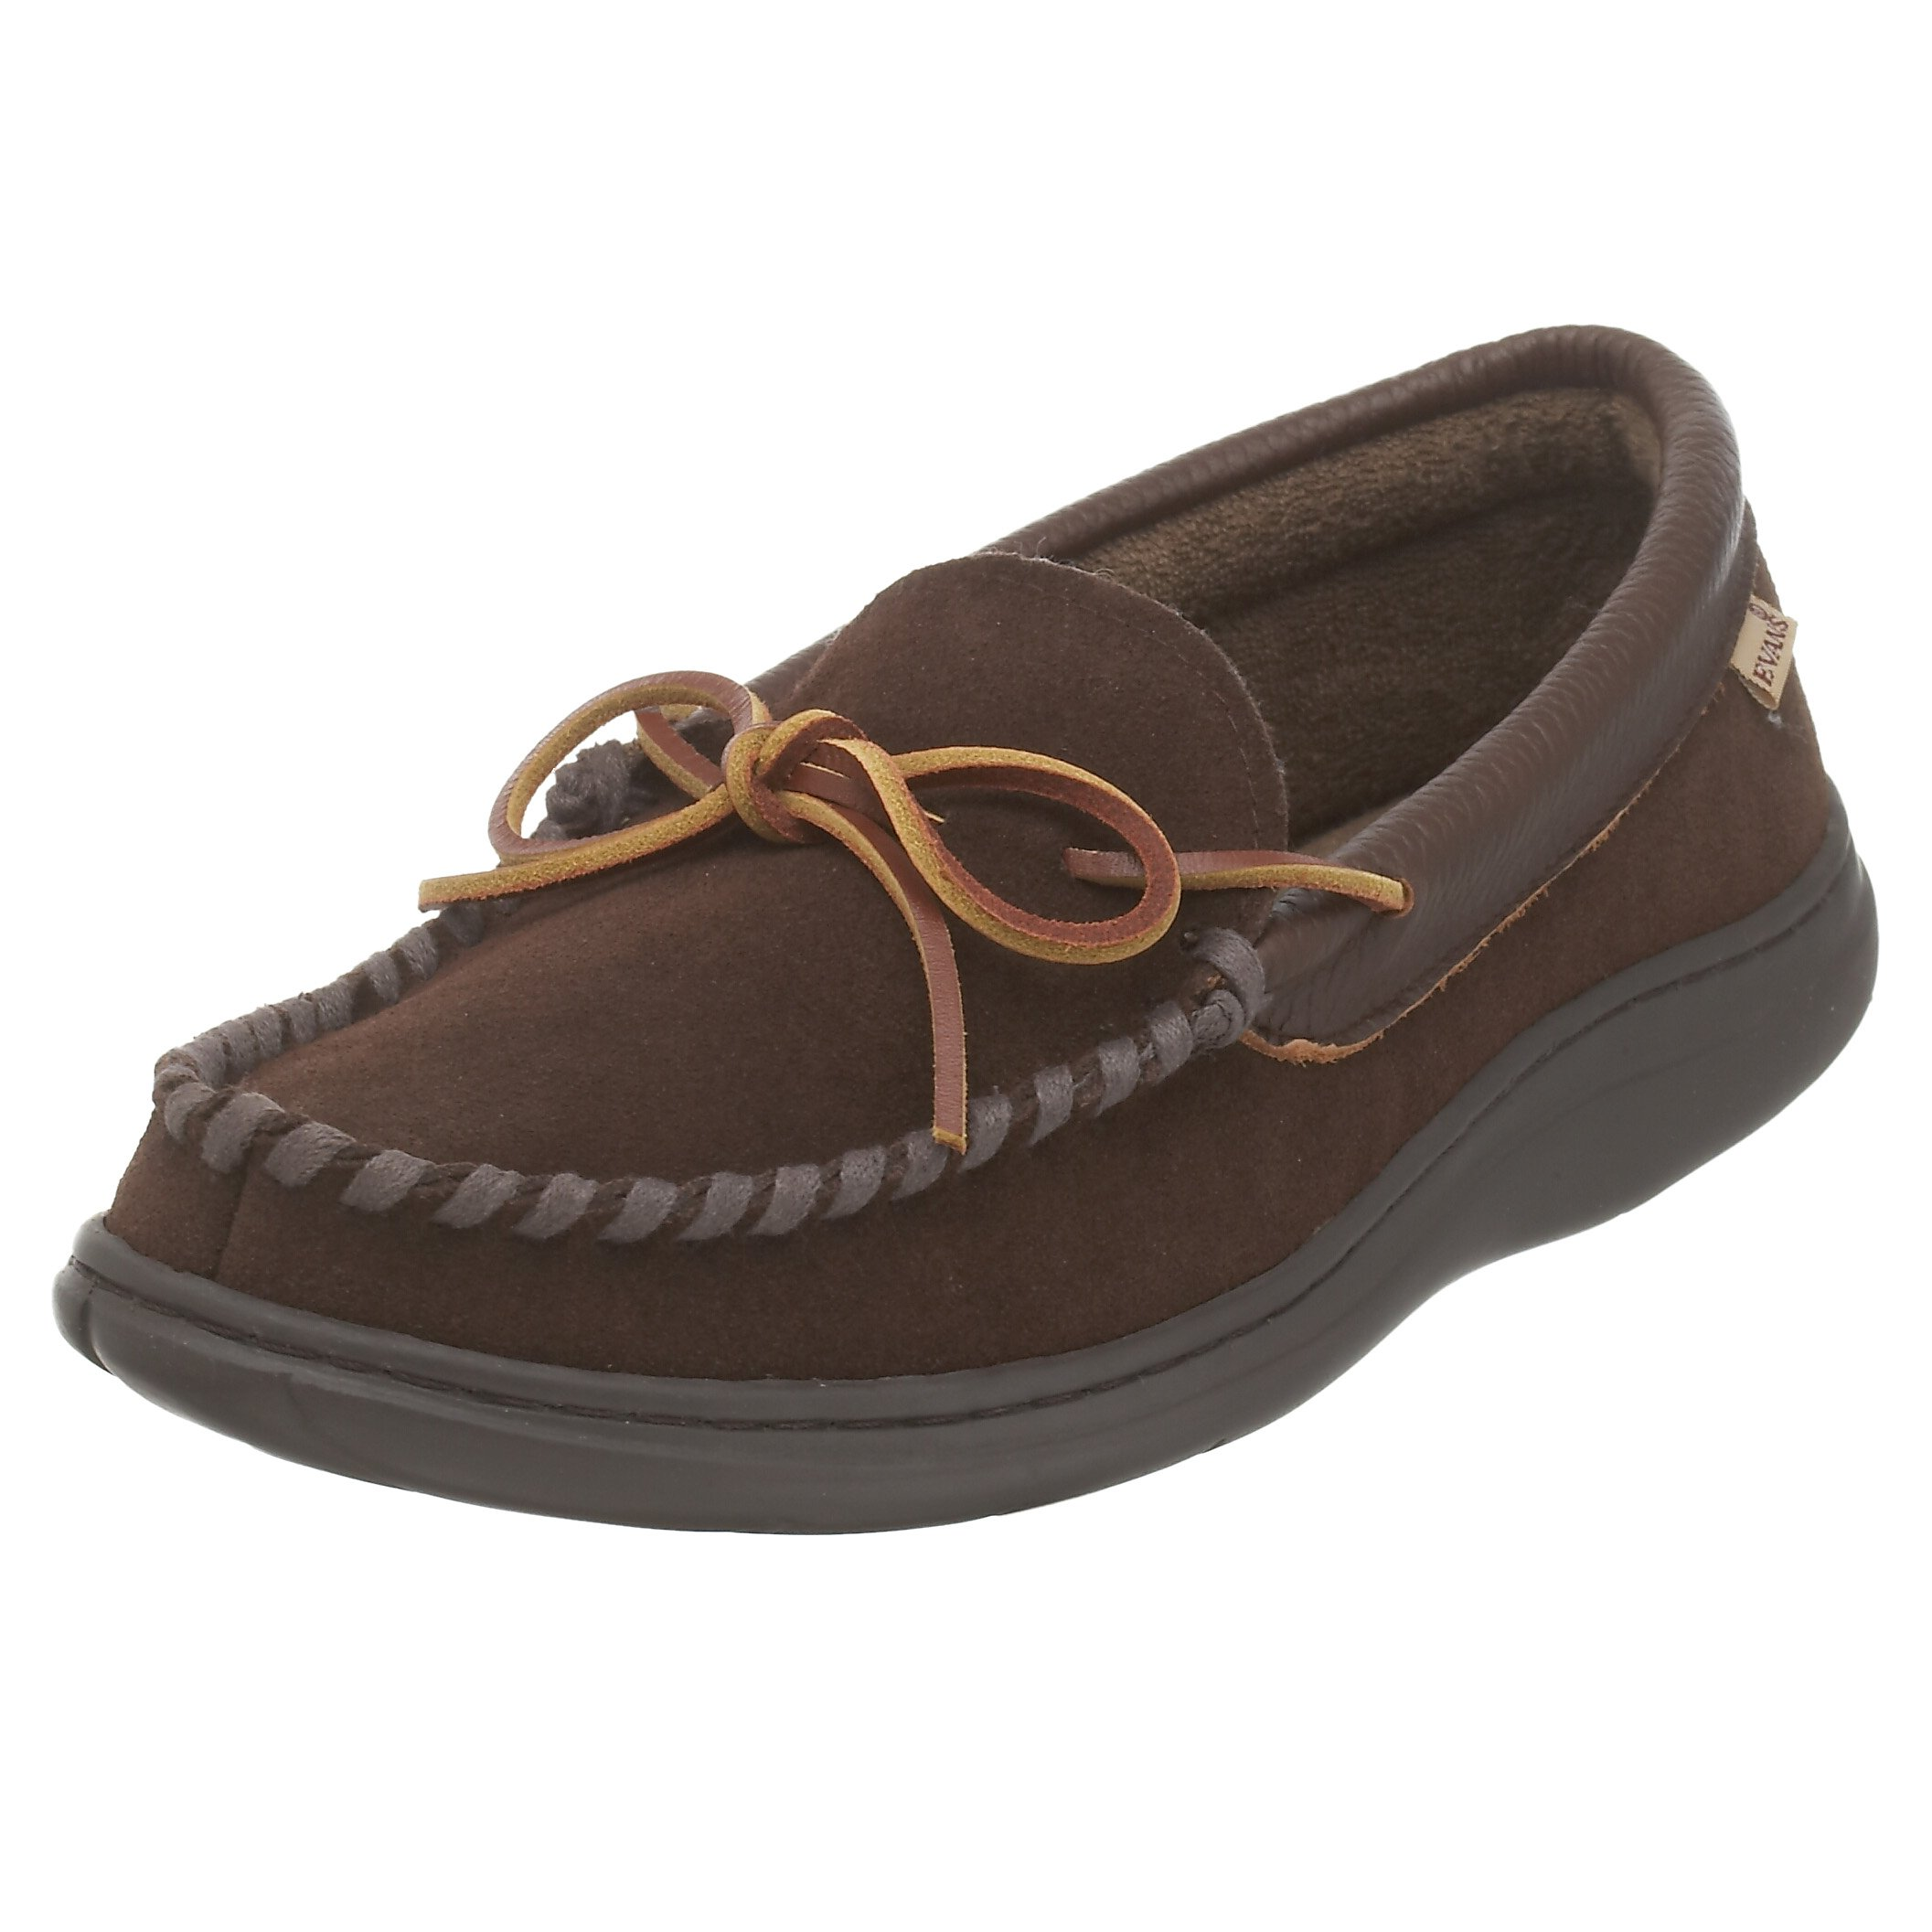 L.B. Evans Men's Atlin Terry Slipper,Chocolate,12 M by L.B. Evans